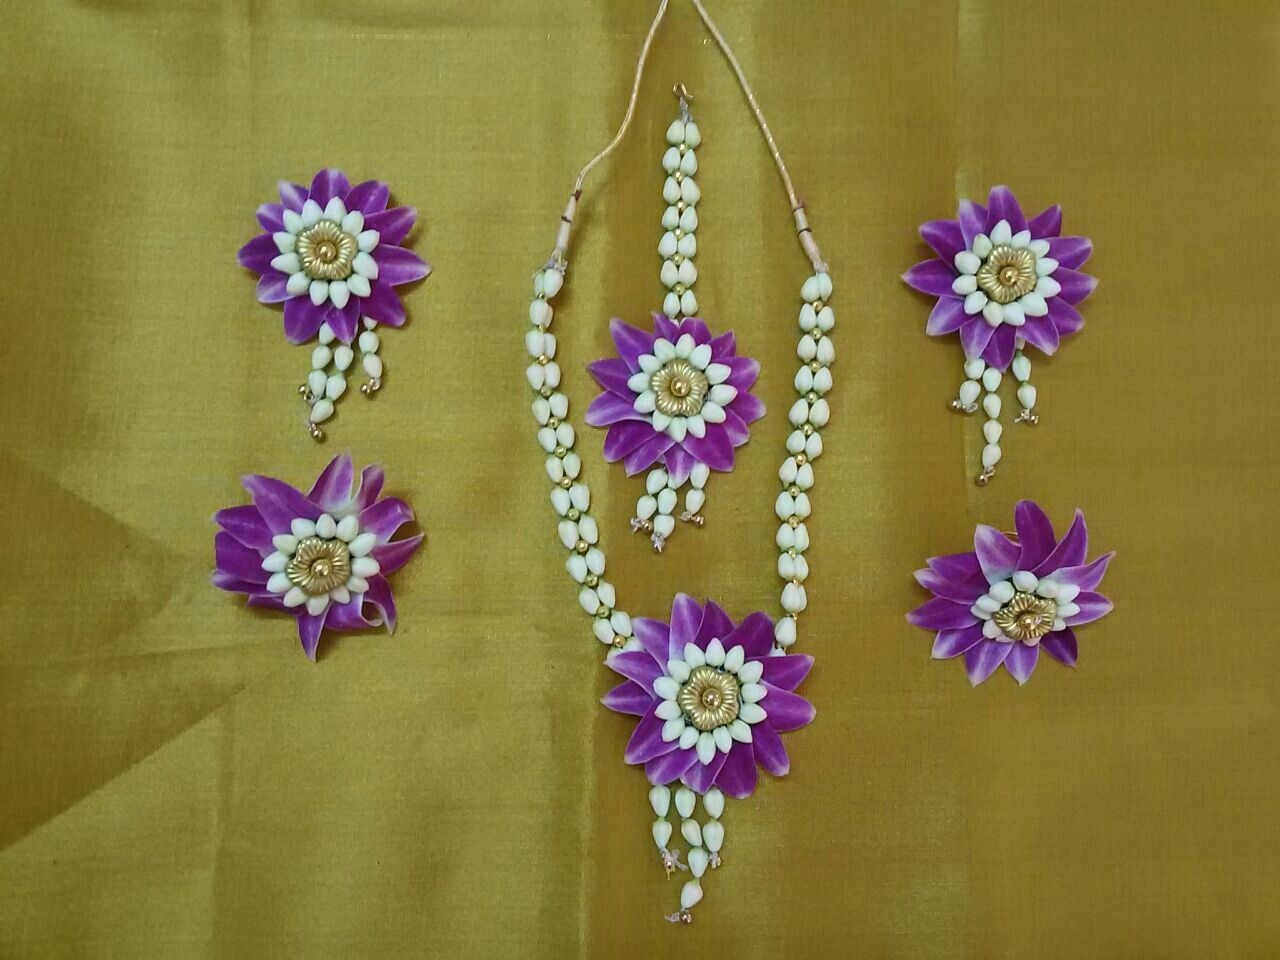 Orchid Flower Jewellery Set By Jyothika Patil Raichur Flower Jewellery For Mehndi Flower Jewellery Floral Jewellery